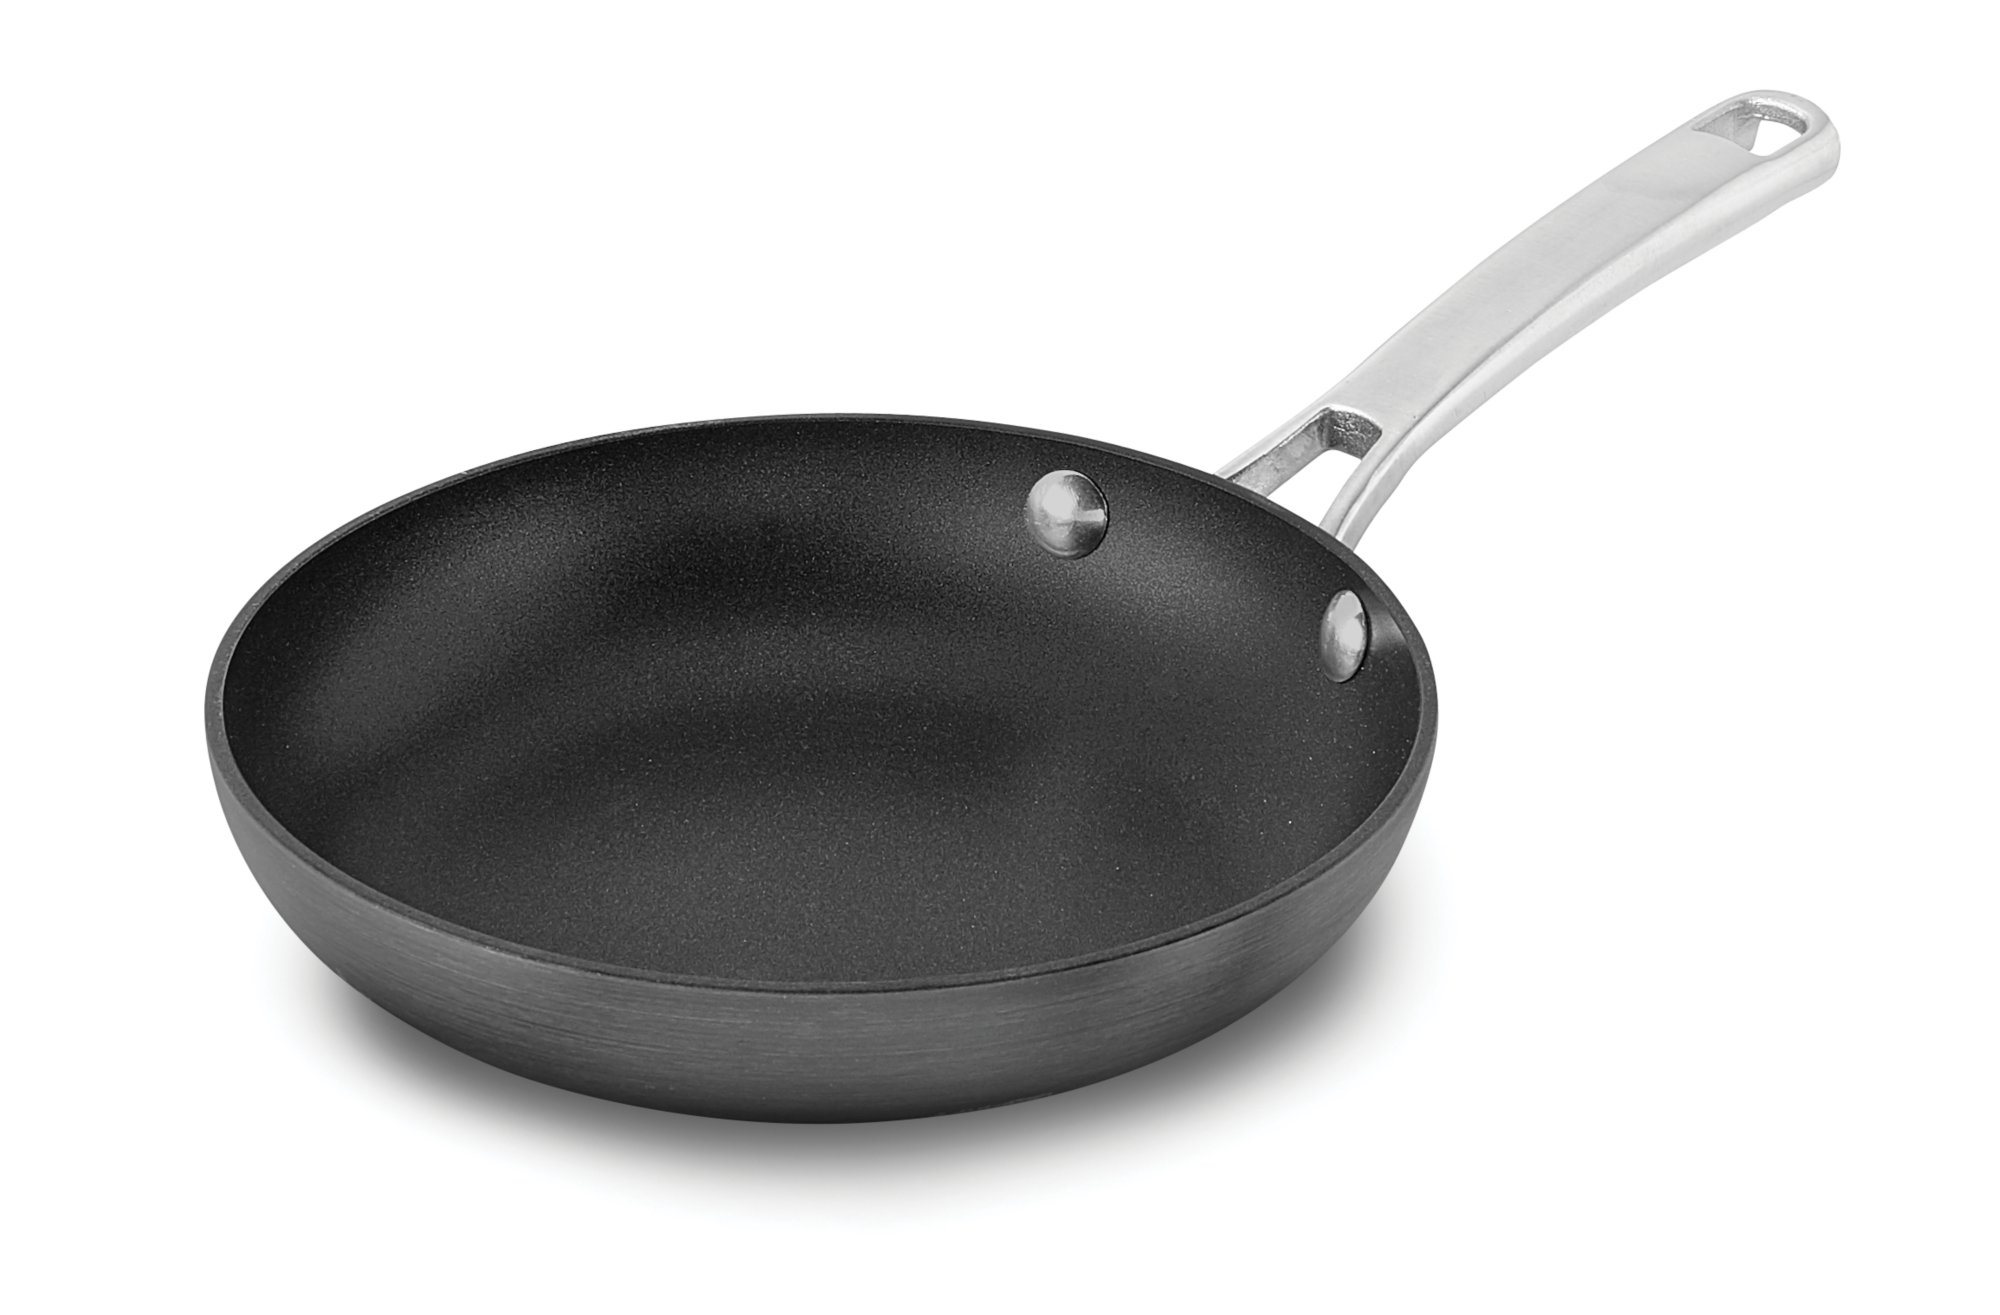 Calphalon Classic™ Nonstick 8-in. Fry Pan